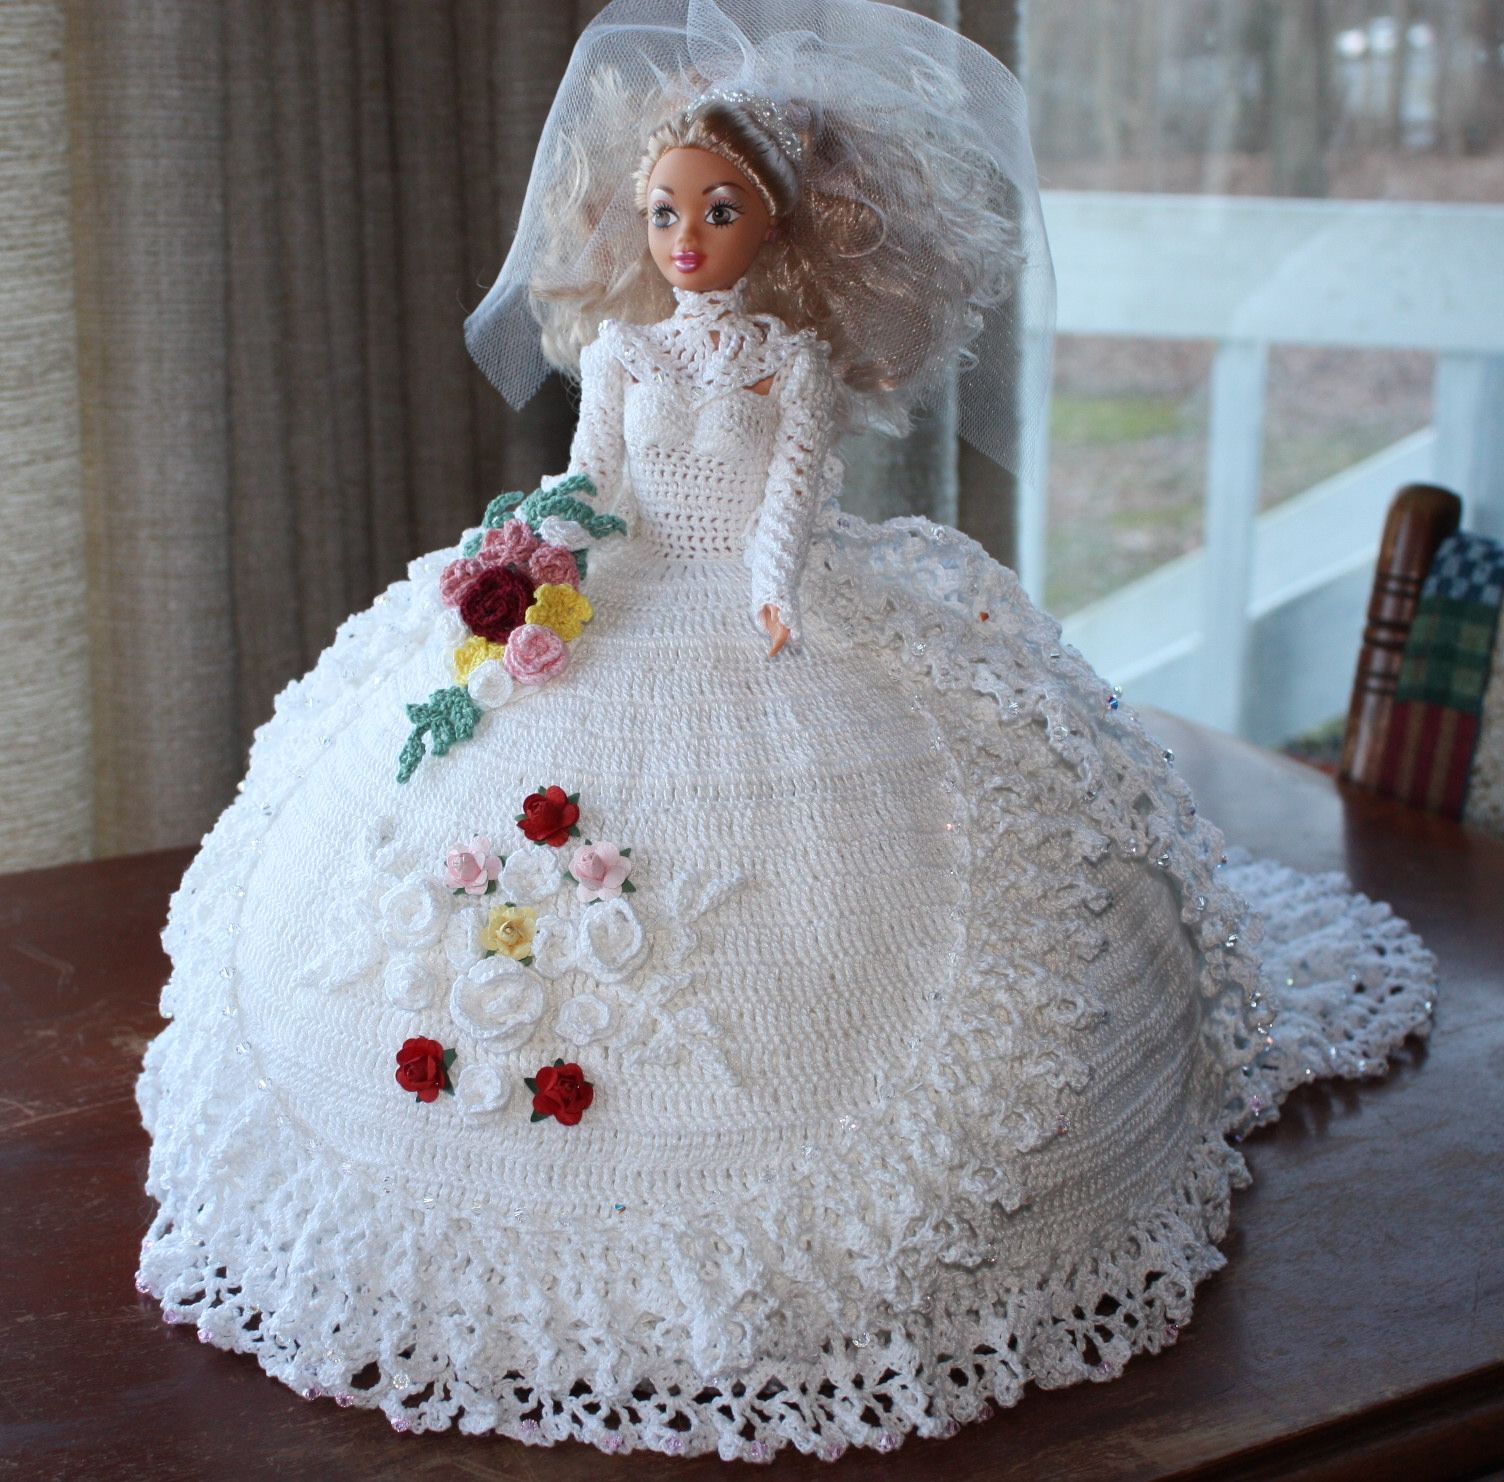 handcrocheted barbie bride gown embellished with